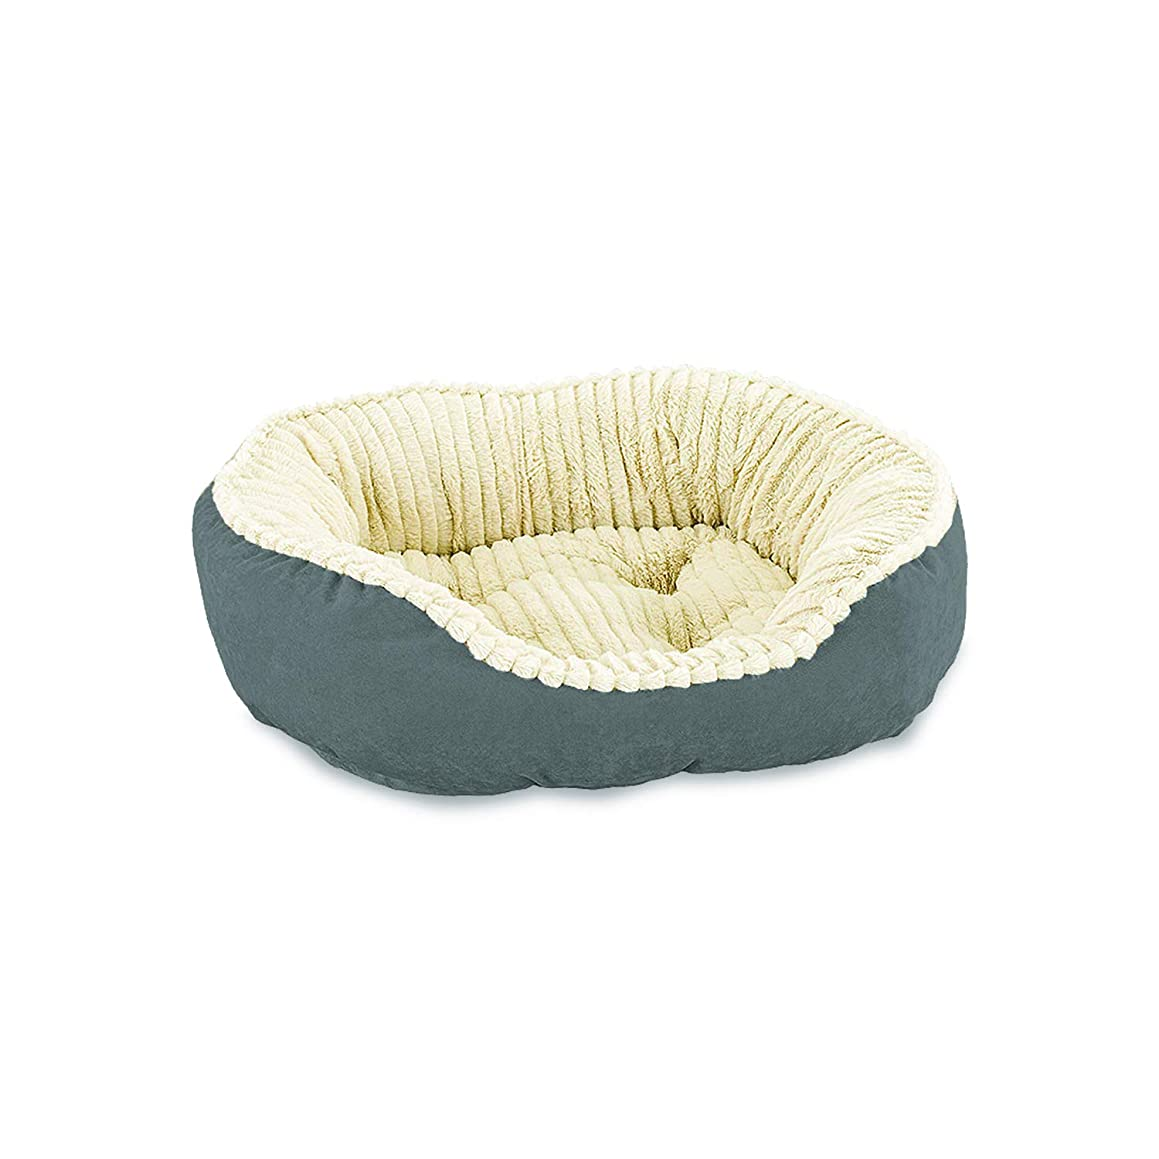 Ethical Pets Sleep Zone Carved Plush Pet Bed